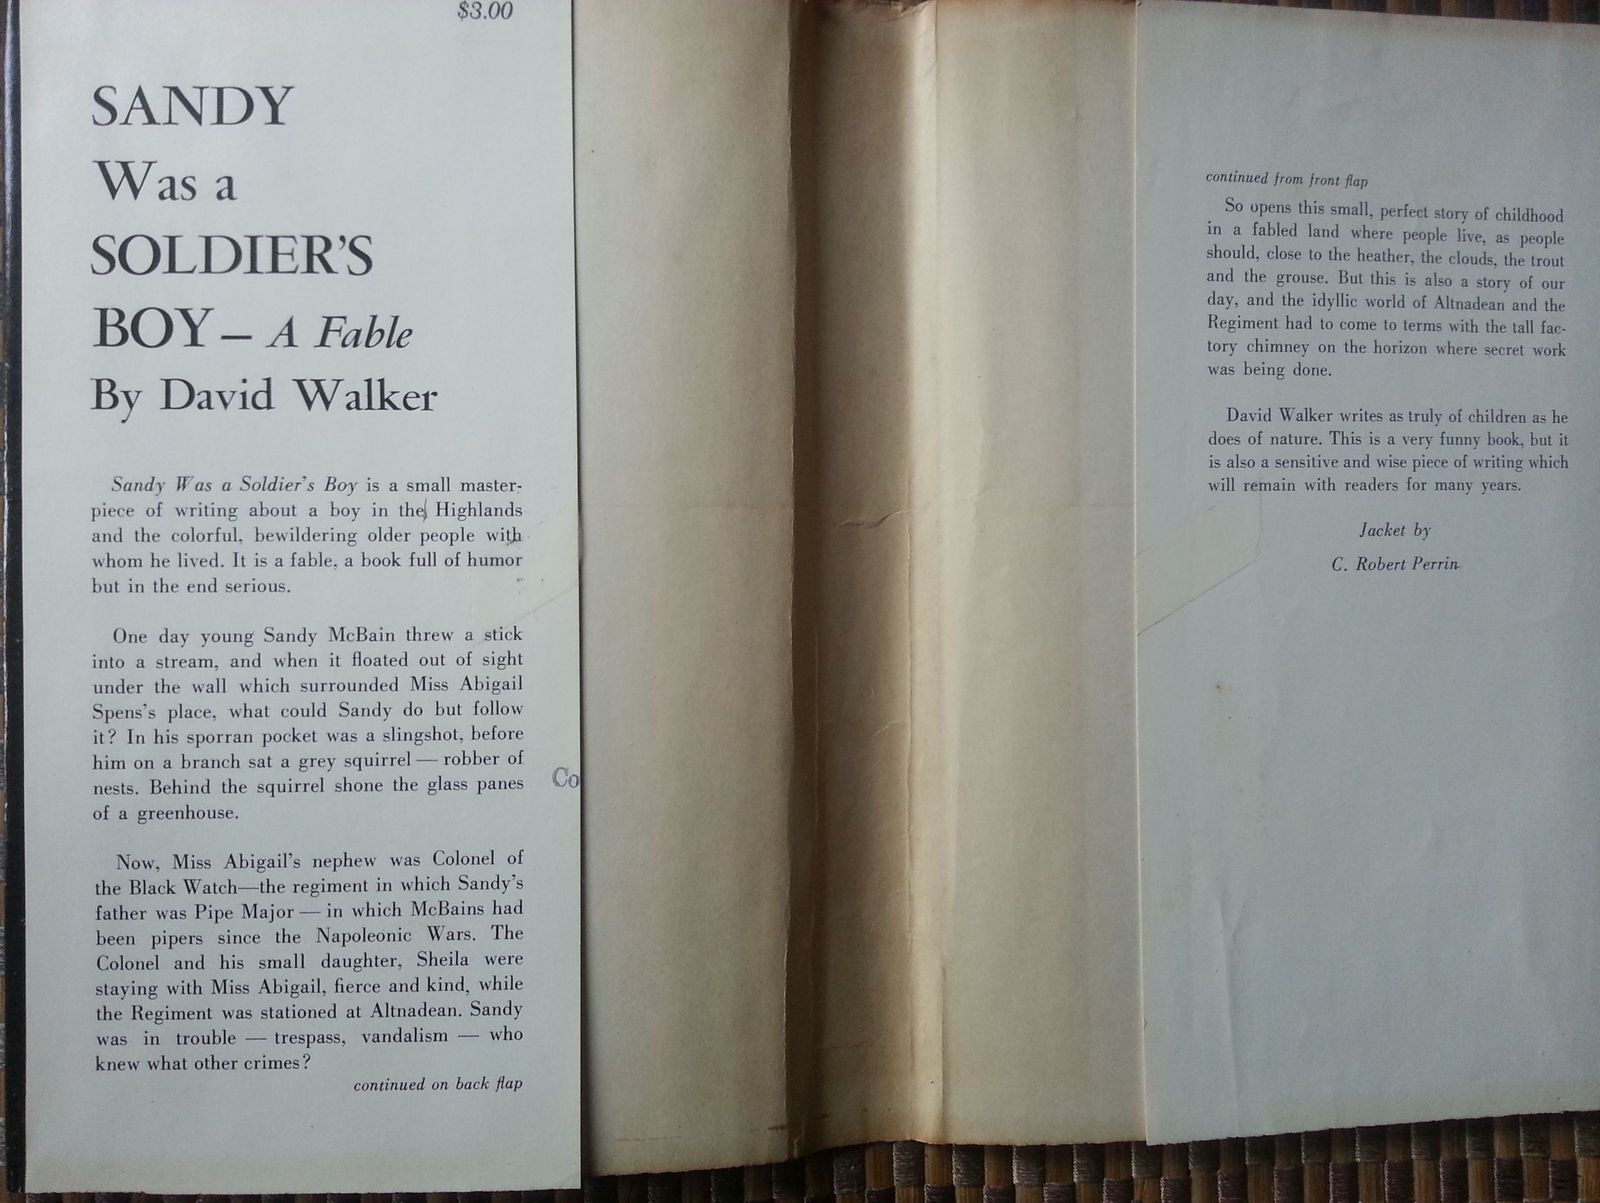 Sandy Was a Soldier's Boy by David Walker 1957 HBDJ  A Fable